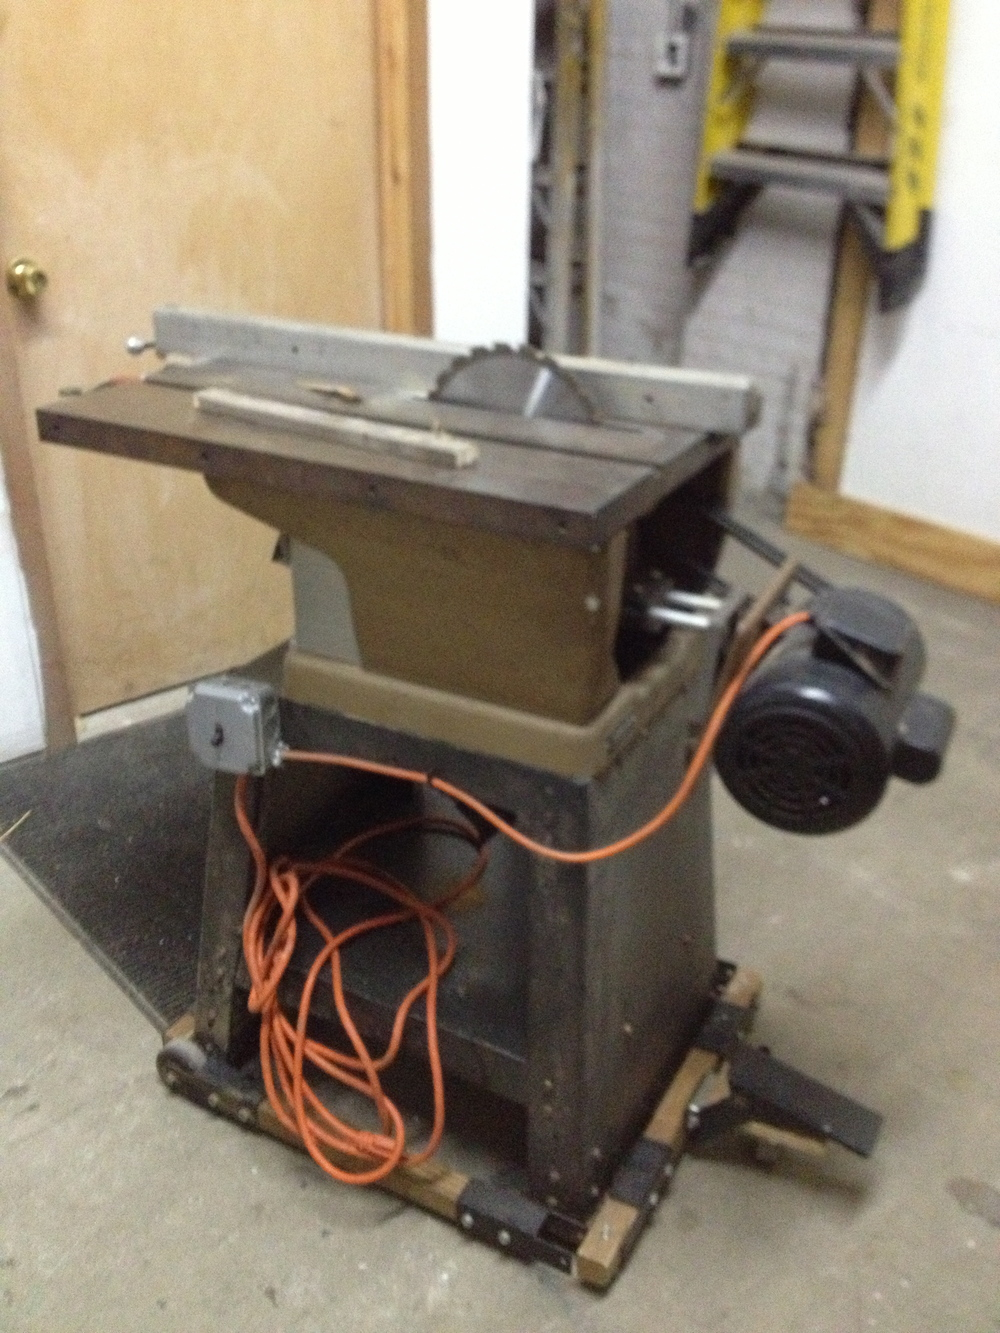 Sears Craftsman Table Saw $100